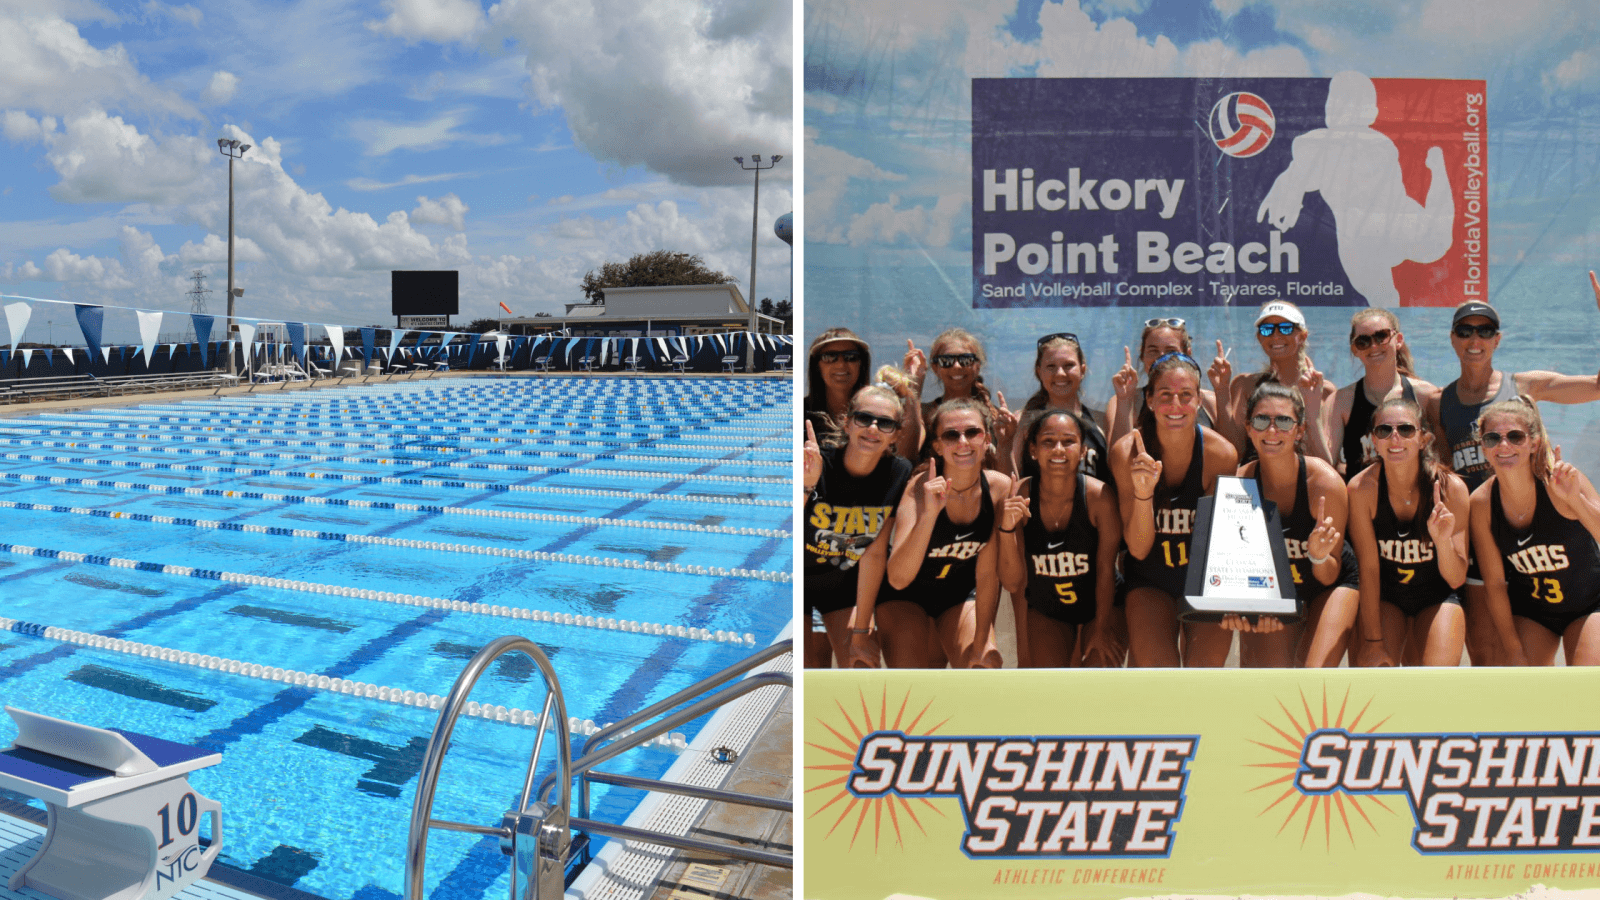 Collage of 2 pictures. Picture on left is of an empty competition swimming pool. Picture on the right is of a high school girls beach volleyball team holding a championship trophy.